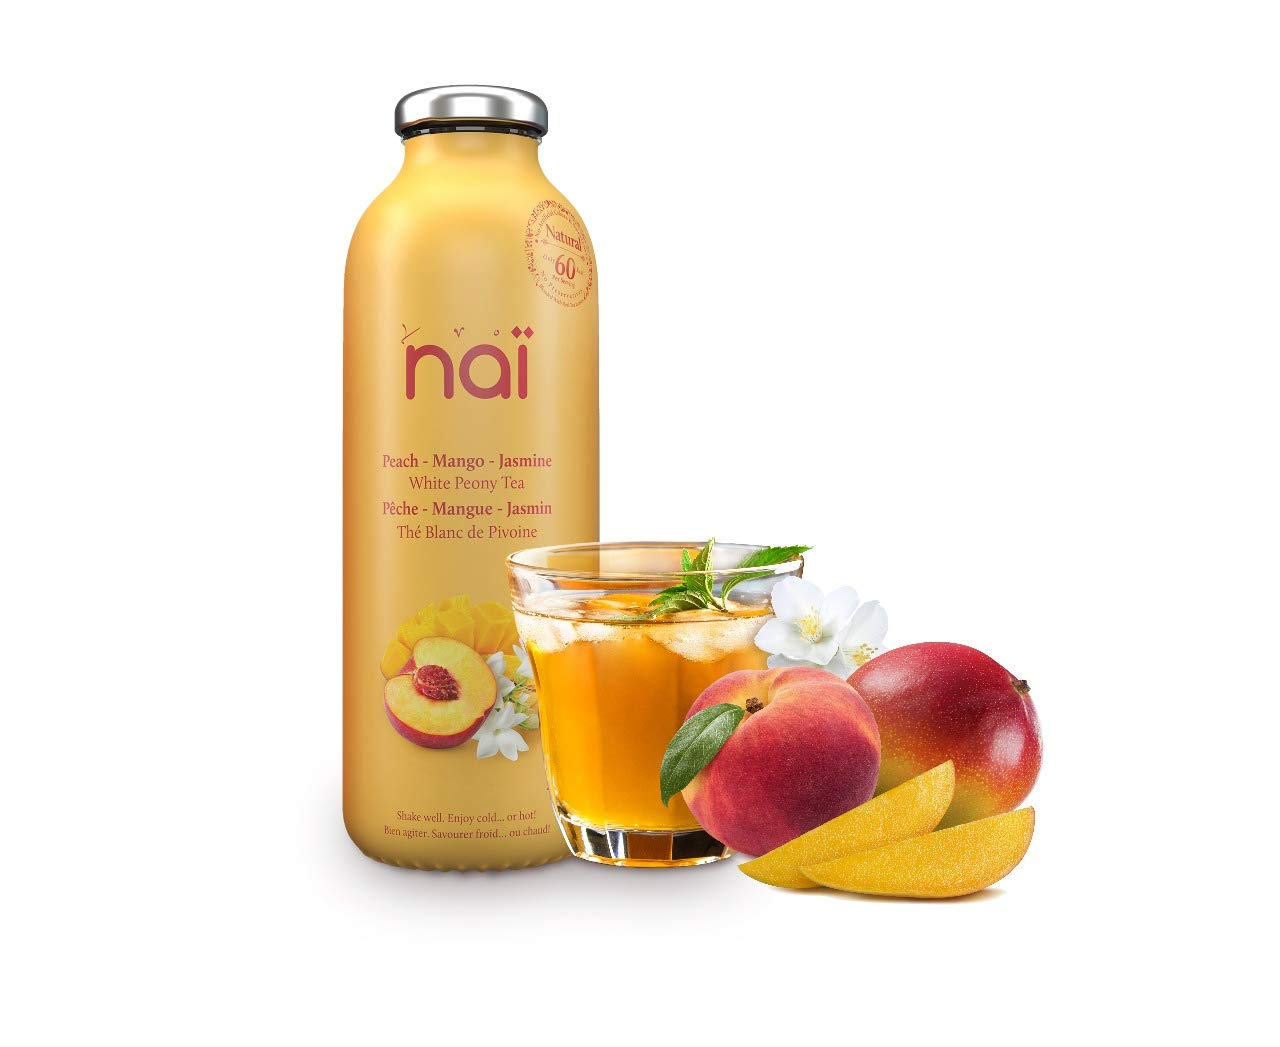 NAI Ice Tea | Pack of 12 | Peach - Mango - Jasmine - White Peony Tea | Enjoy Hot or Cold | Made of Natural Ingredients | No Artificial Colors & Sweeteners | No Preservatives | 16 OZ | Made in USA